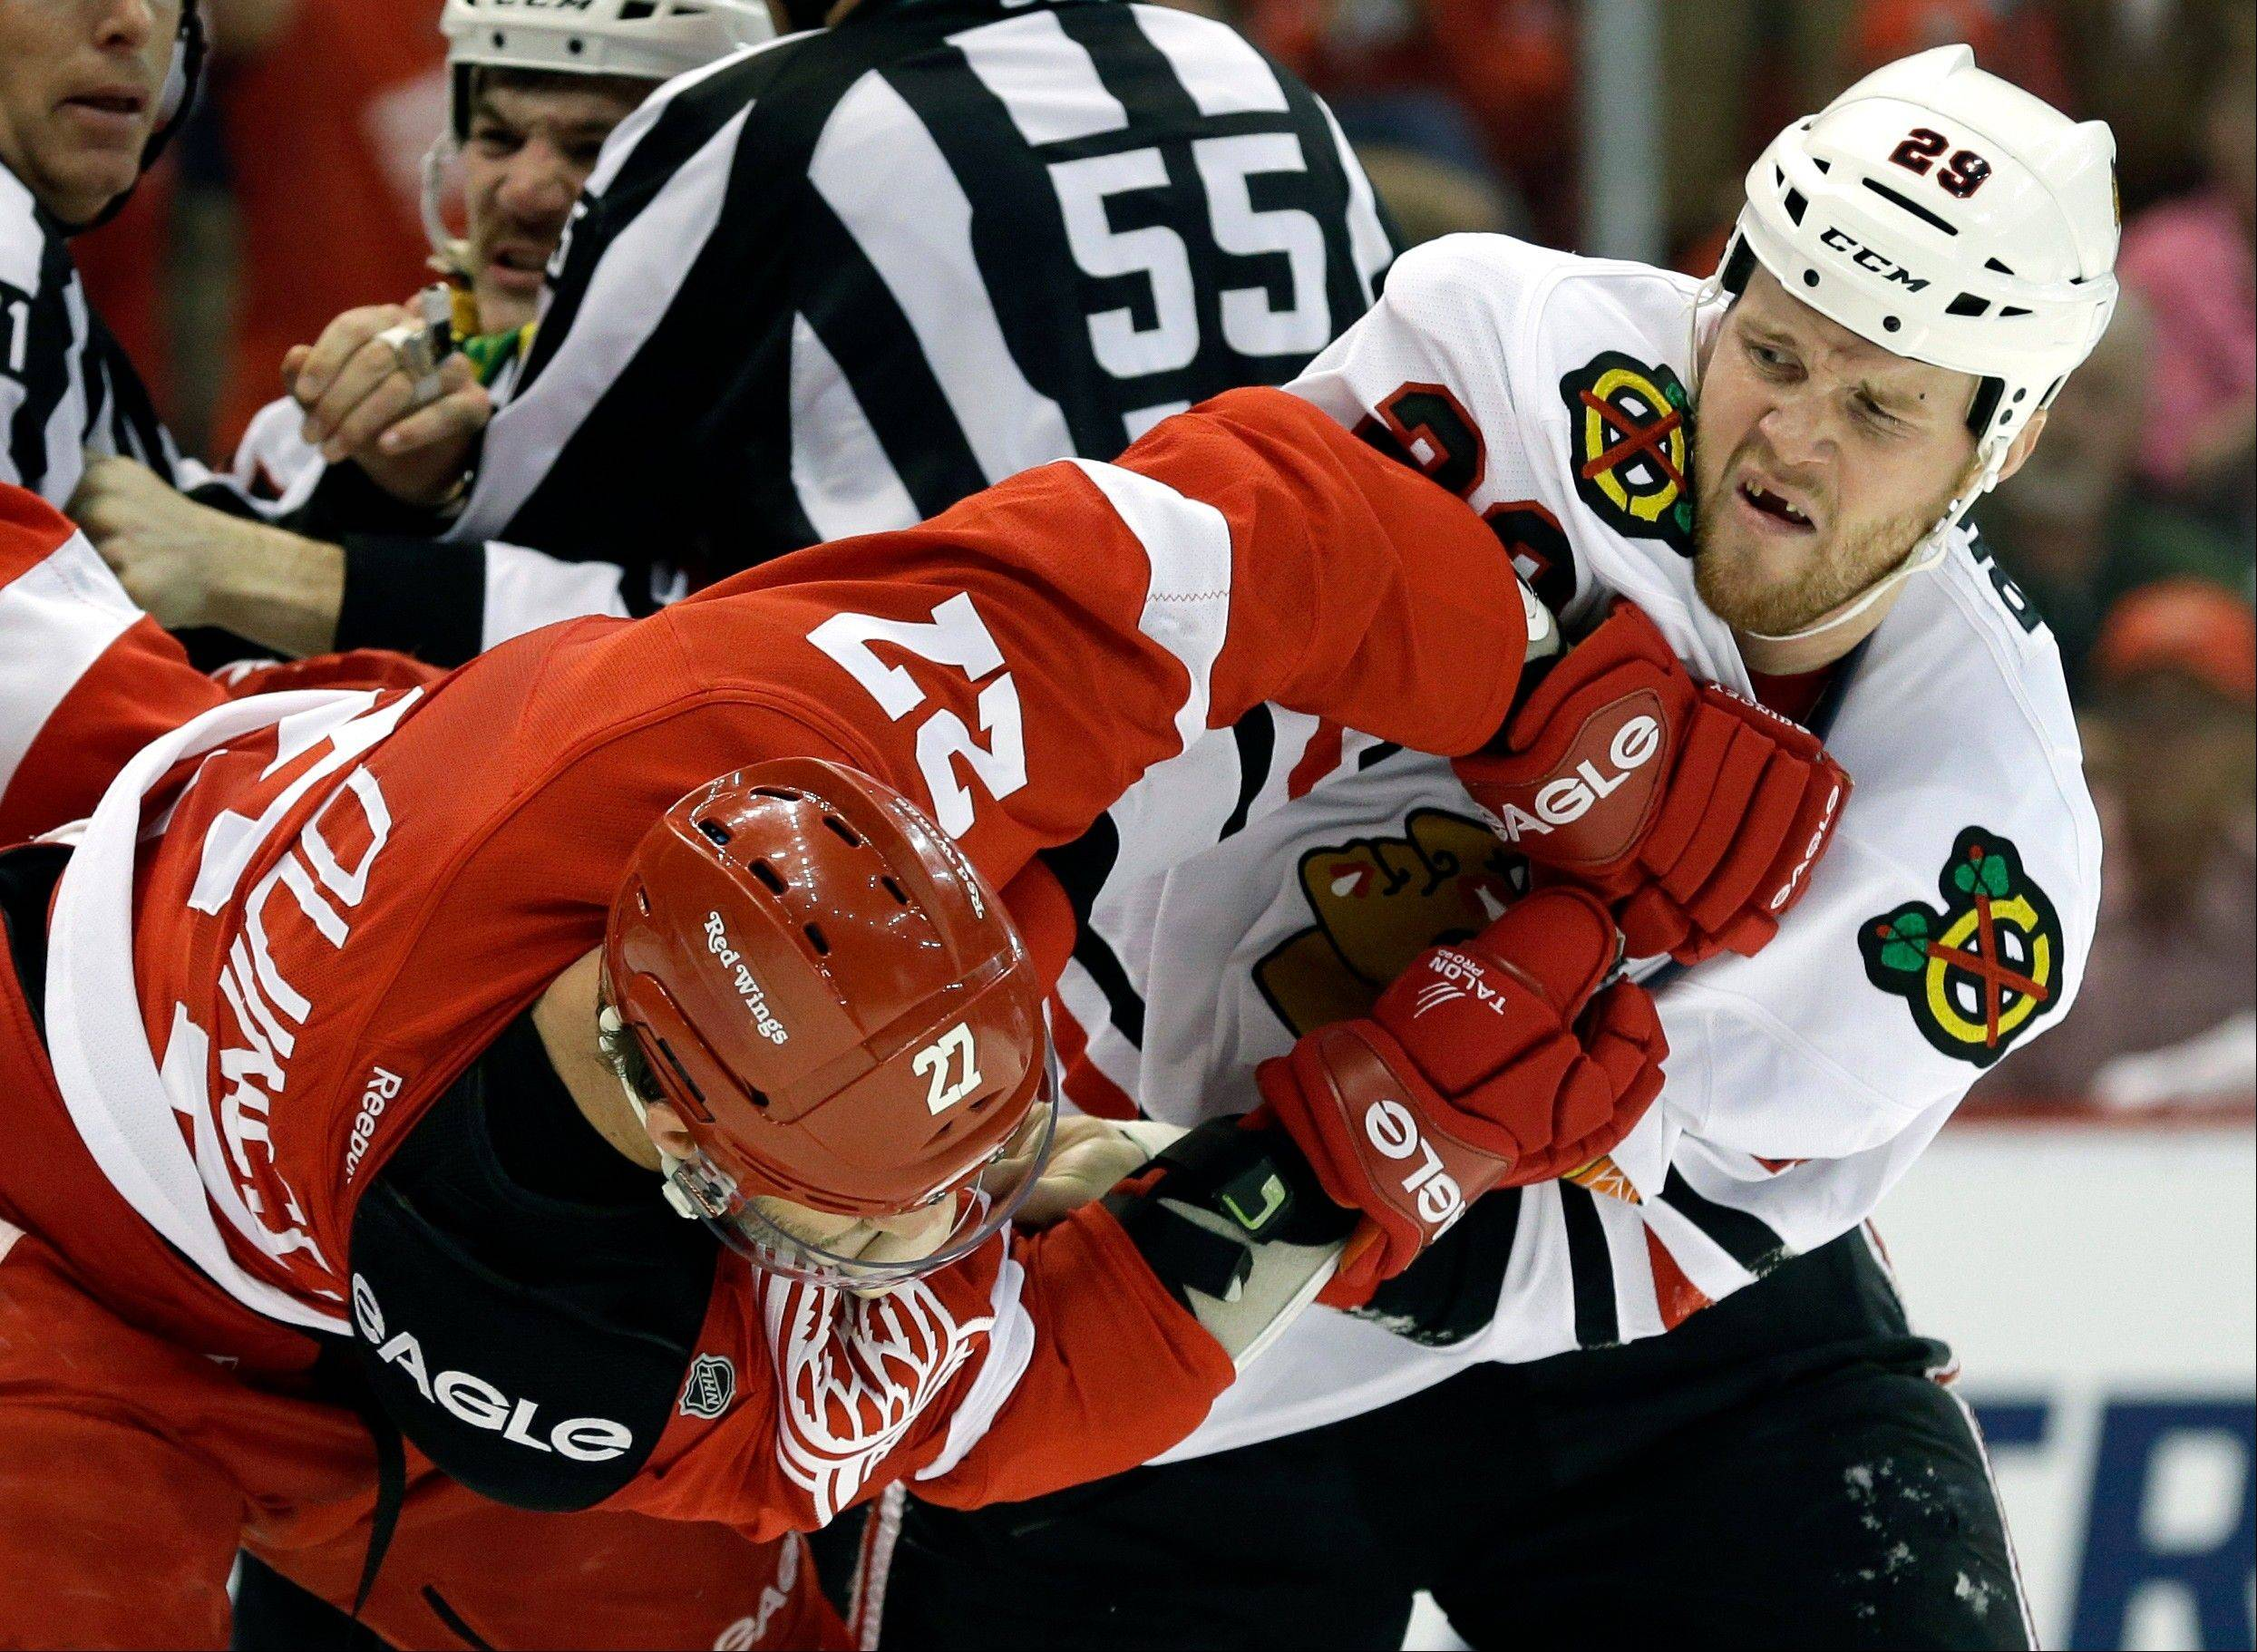 Hawks, Wings both focusing on power play units